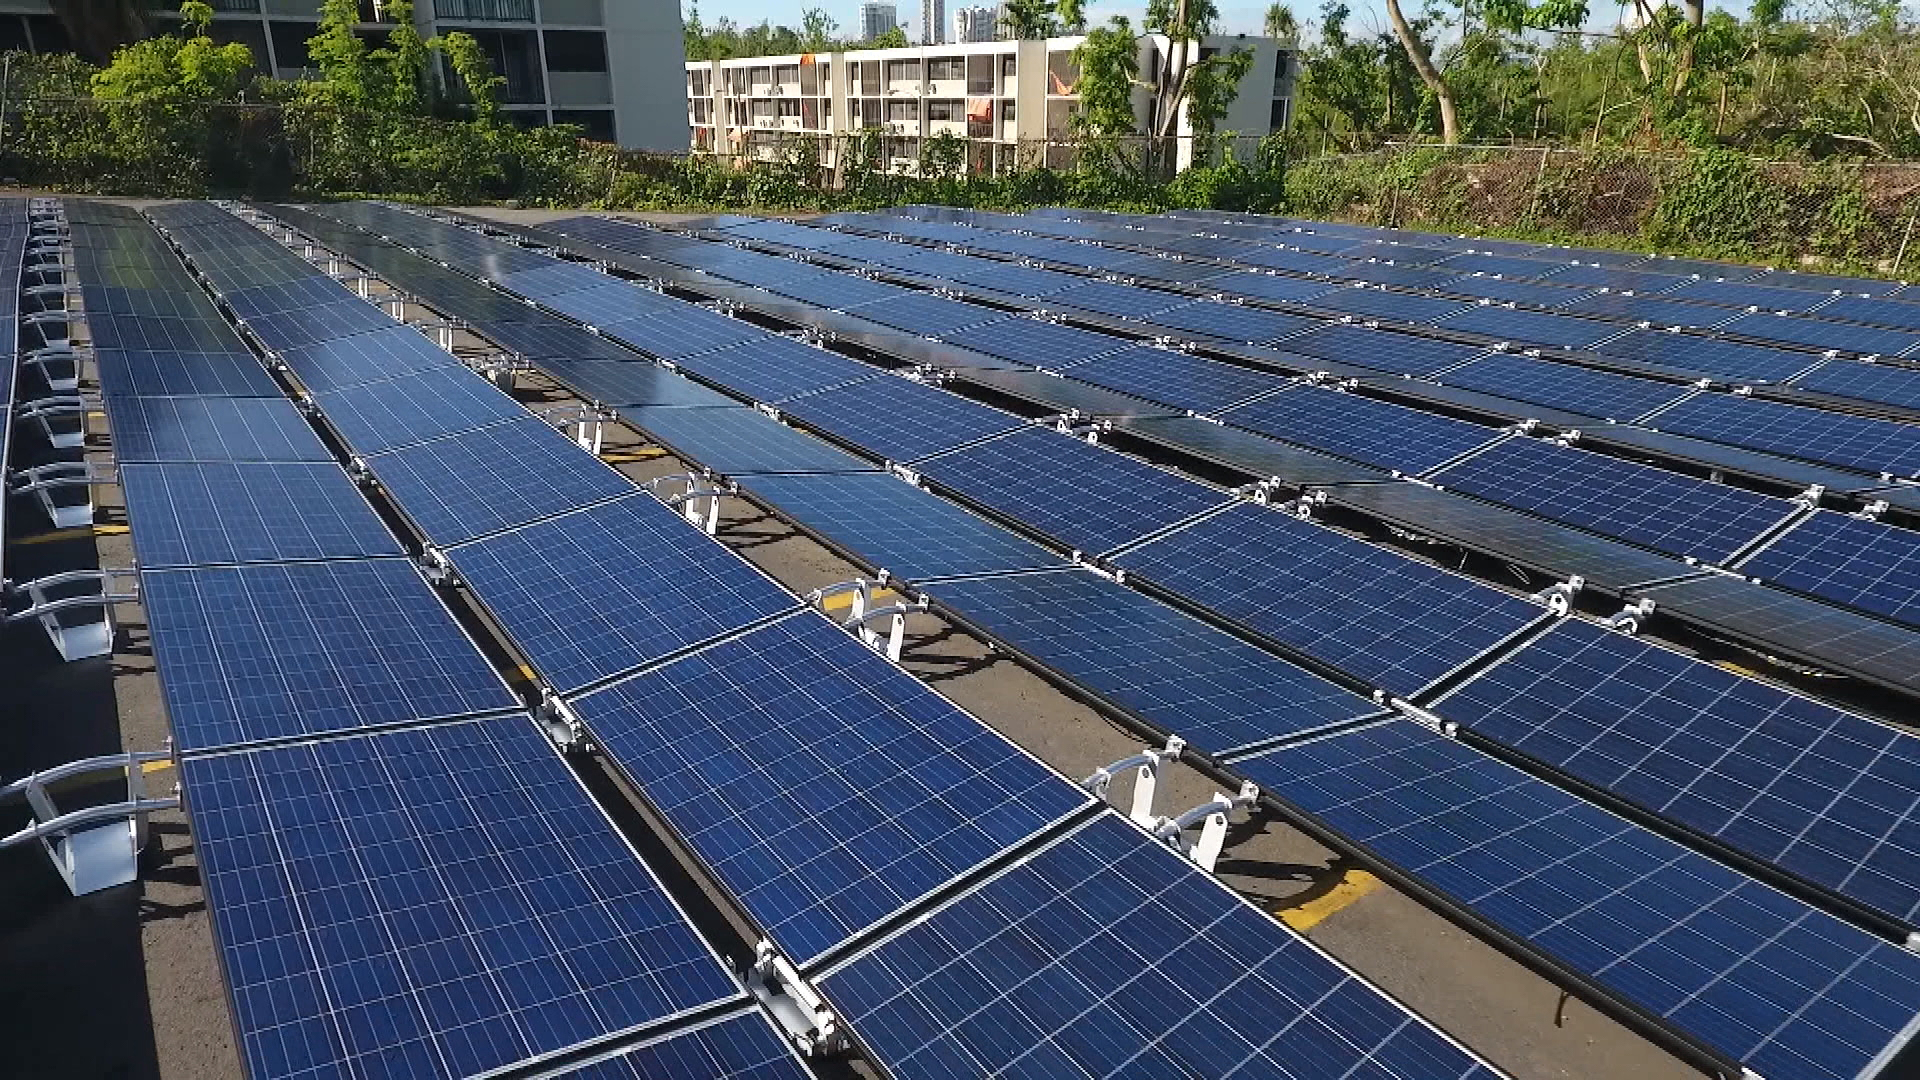 Image: Solar panels in San Juan